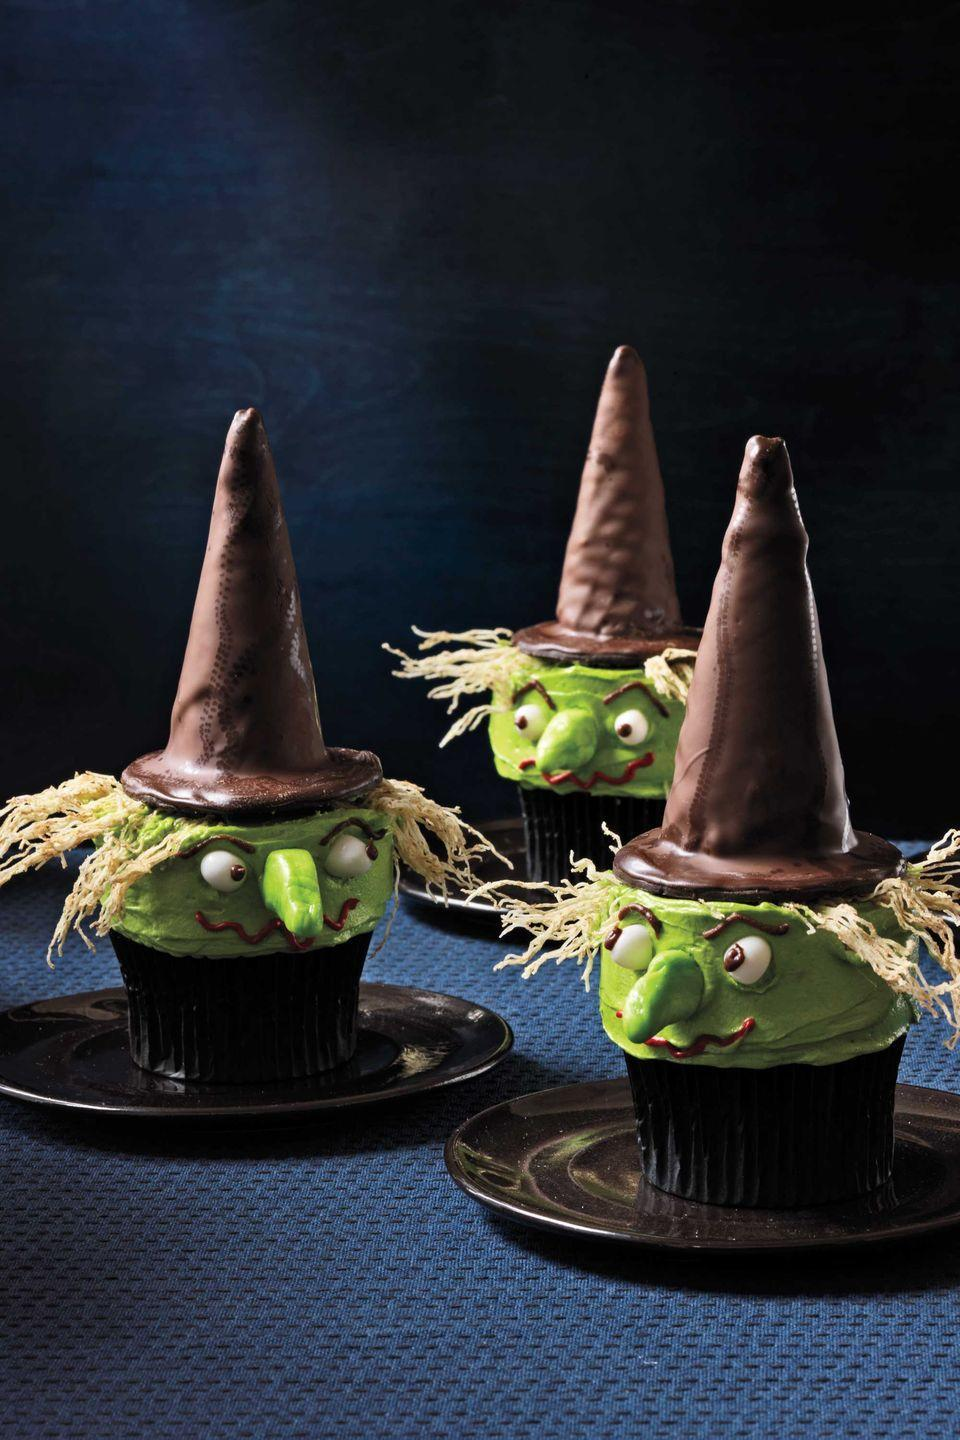 """<p>Put a sugar-coated spell on your guests with these bewitching treats, which elevate homemade vanilla cupcakes with a clever combination of chocolaty store-bought goods, frosting, and candy.<em><br><br><a href=""""https://www.womansday.com/food-recipes/food-drinks/recipes/a11951/witch-cupcakes-recipe-123434/"""" rel=""""nofollow noopener"""" target=""""_blank"""" data-ylk=""""slk:Get the Witchy Cupcakes recipe."""" class=""""link rapid-noclick-resp"""">Get the Witchy Cupcakes recipe.</a></em></p>"""